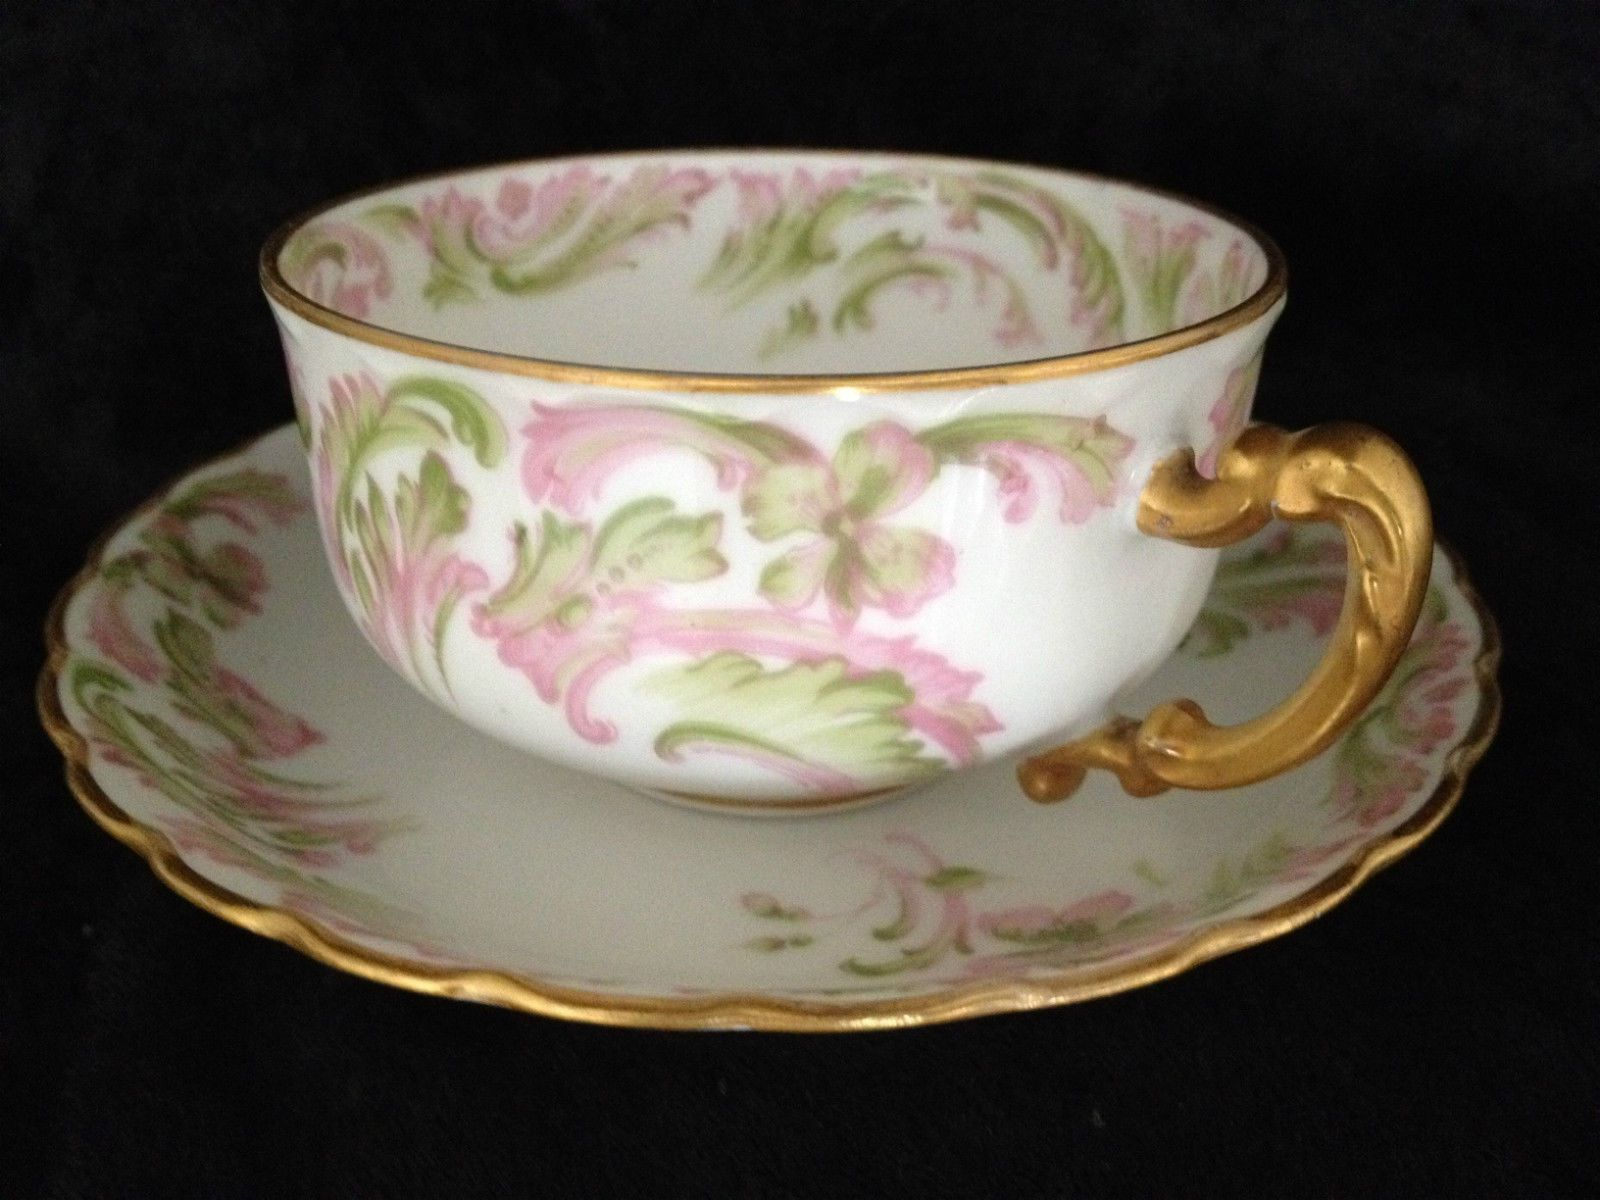 Amazing Haviland Limoges France Tea Cup U0026 Saucer Pink/Green Clover U0026 Scrolls Nice Design